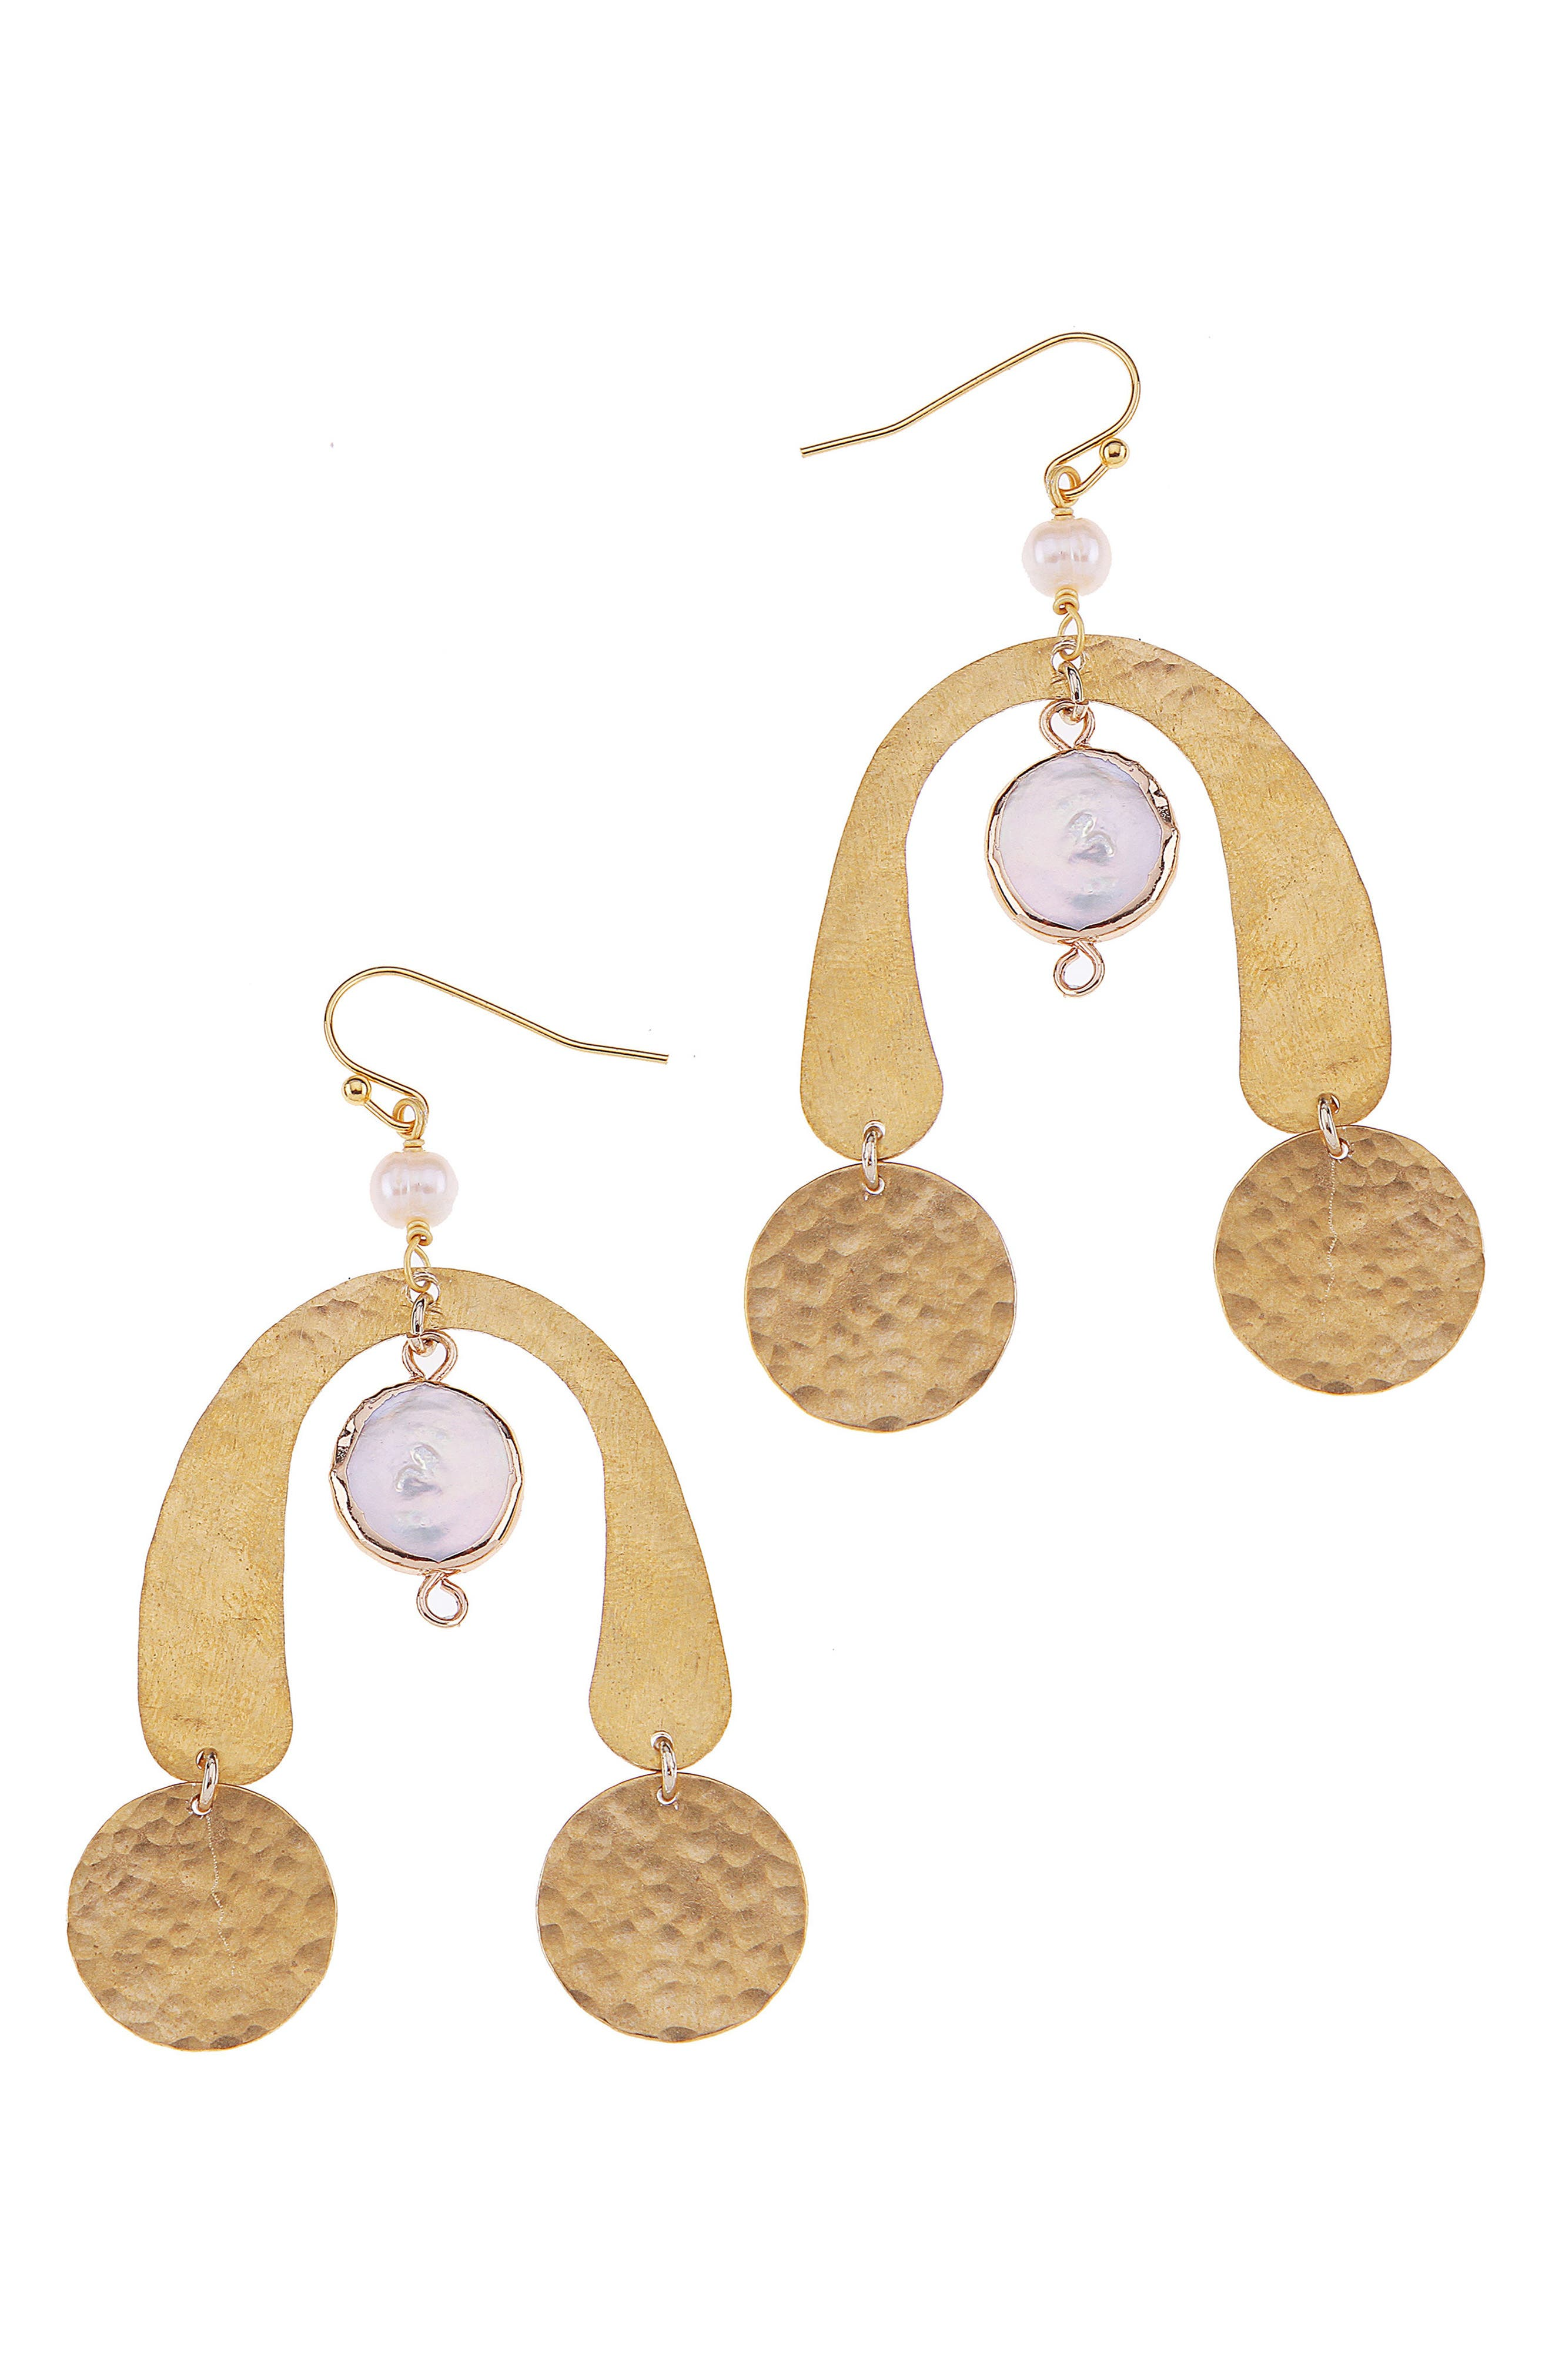 Brass Coin & Freshwater Pearl Statement Earrings,                             Main thumbnail 1, color,